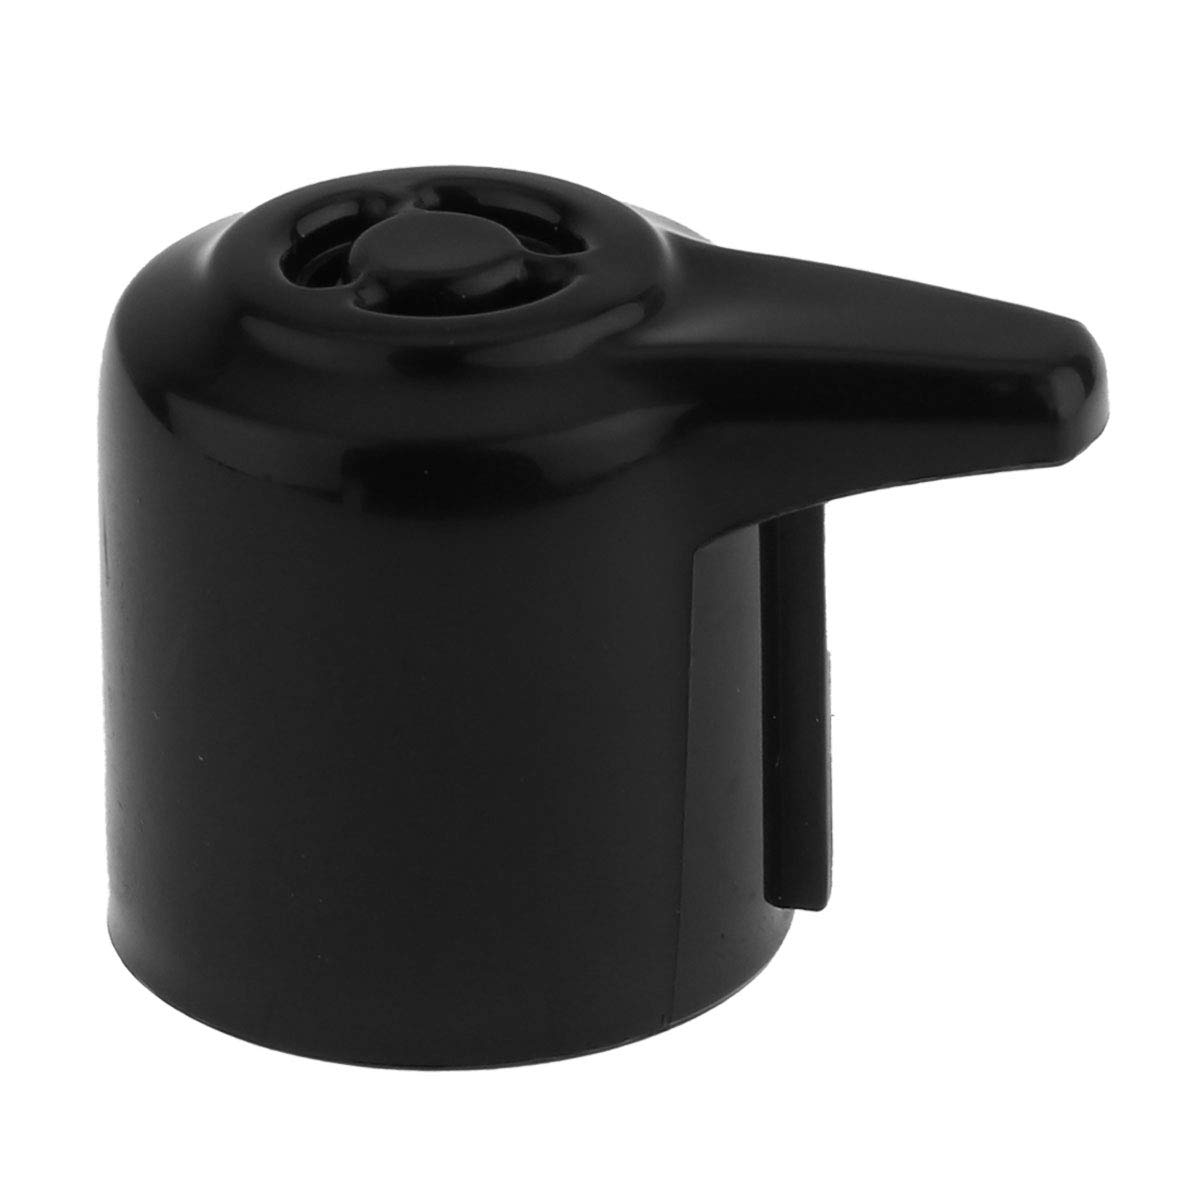 Freebily Steam Release Valve for Instant Pot Duo Mini 3 Qt Duo Plus Mini 3 Qt DUO60 6 Qt and DUO80 8 Qt Programmable Pressure Cooker Black One Size by Freebily (Image #4)